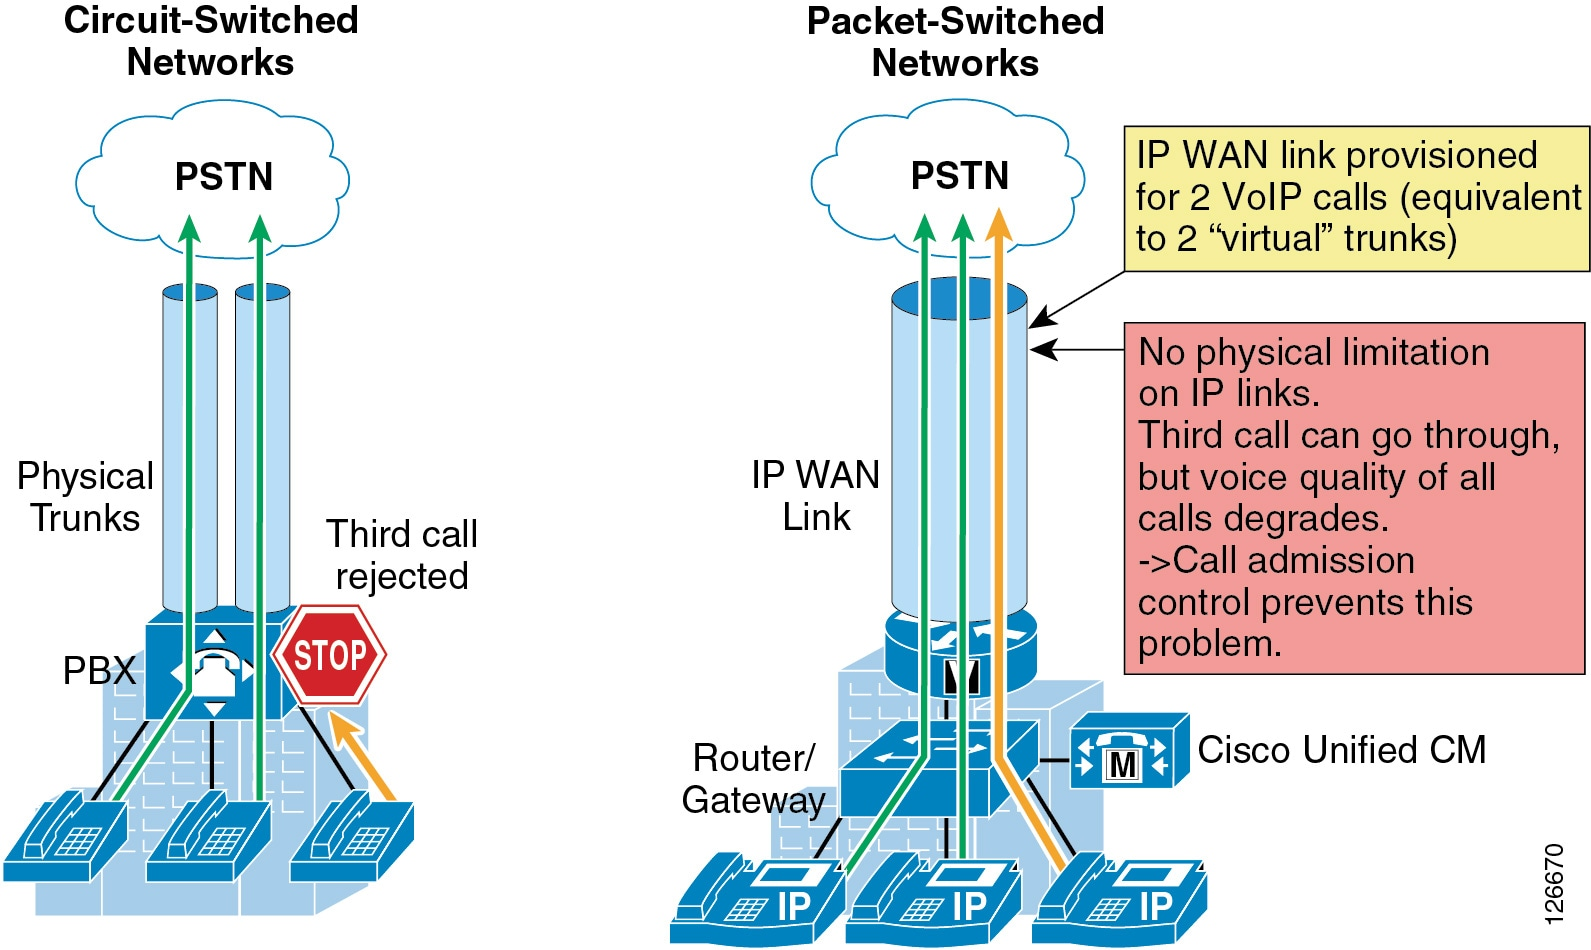 Cisco Unified Communications System 90 Srnd Call Admission Circuitforcircuitconceptspage2jpg As Shown On The Left Side Of Figure 11 1 Traditional Tdm Based Pbxs Operate Within Circuit Switched Networks Where A Is Established Each Time